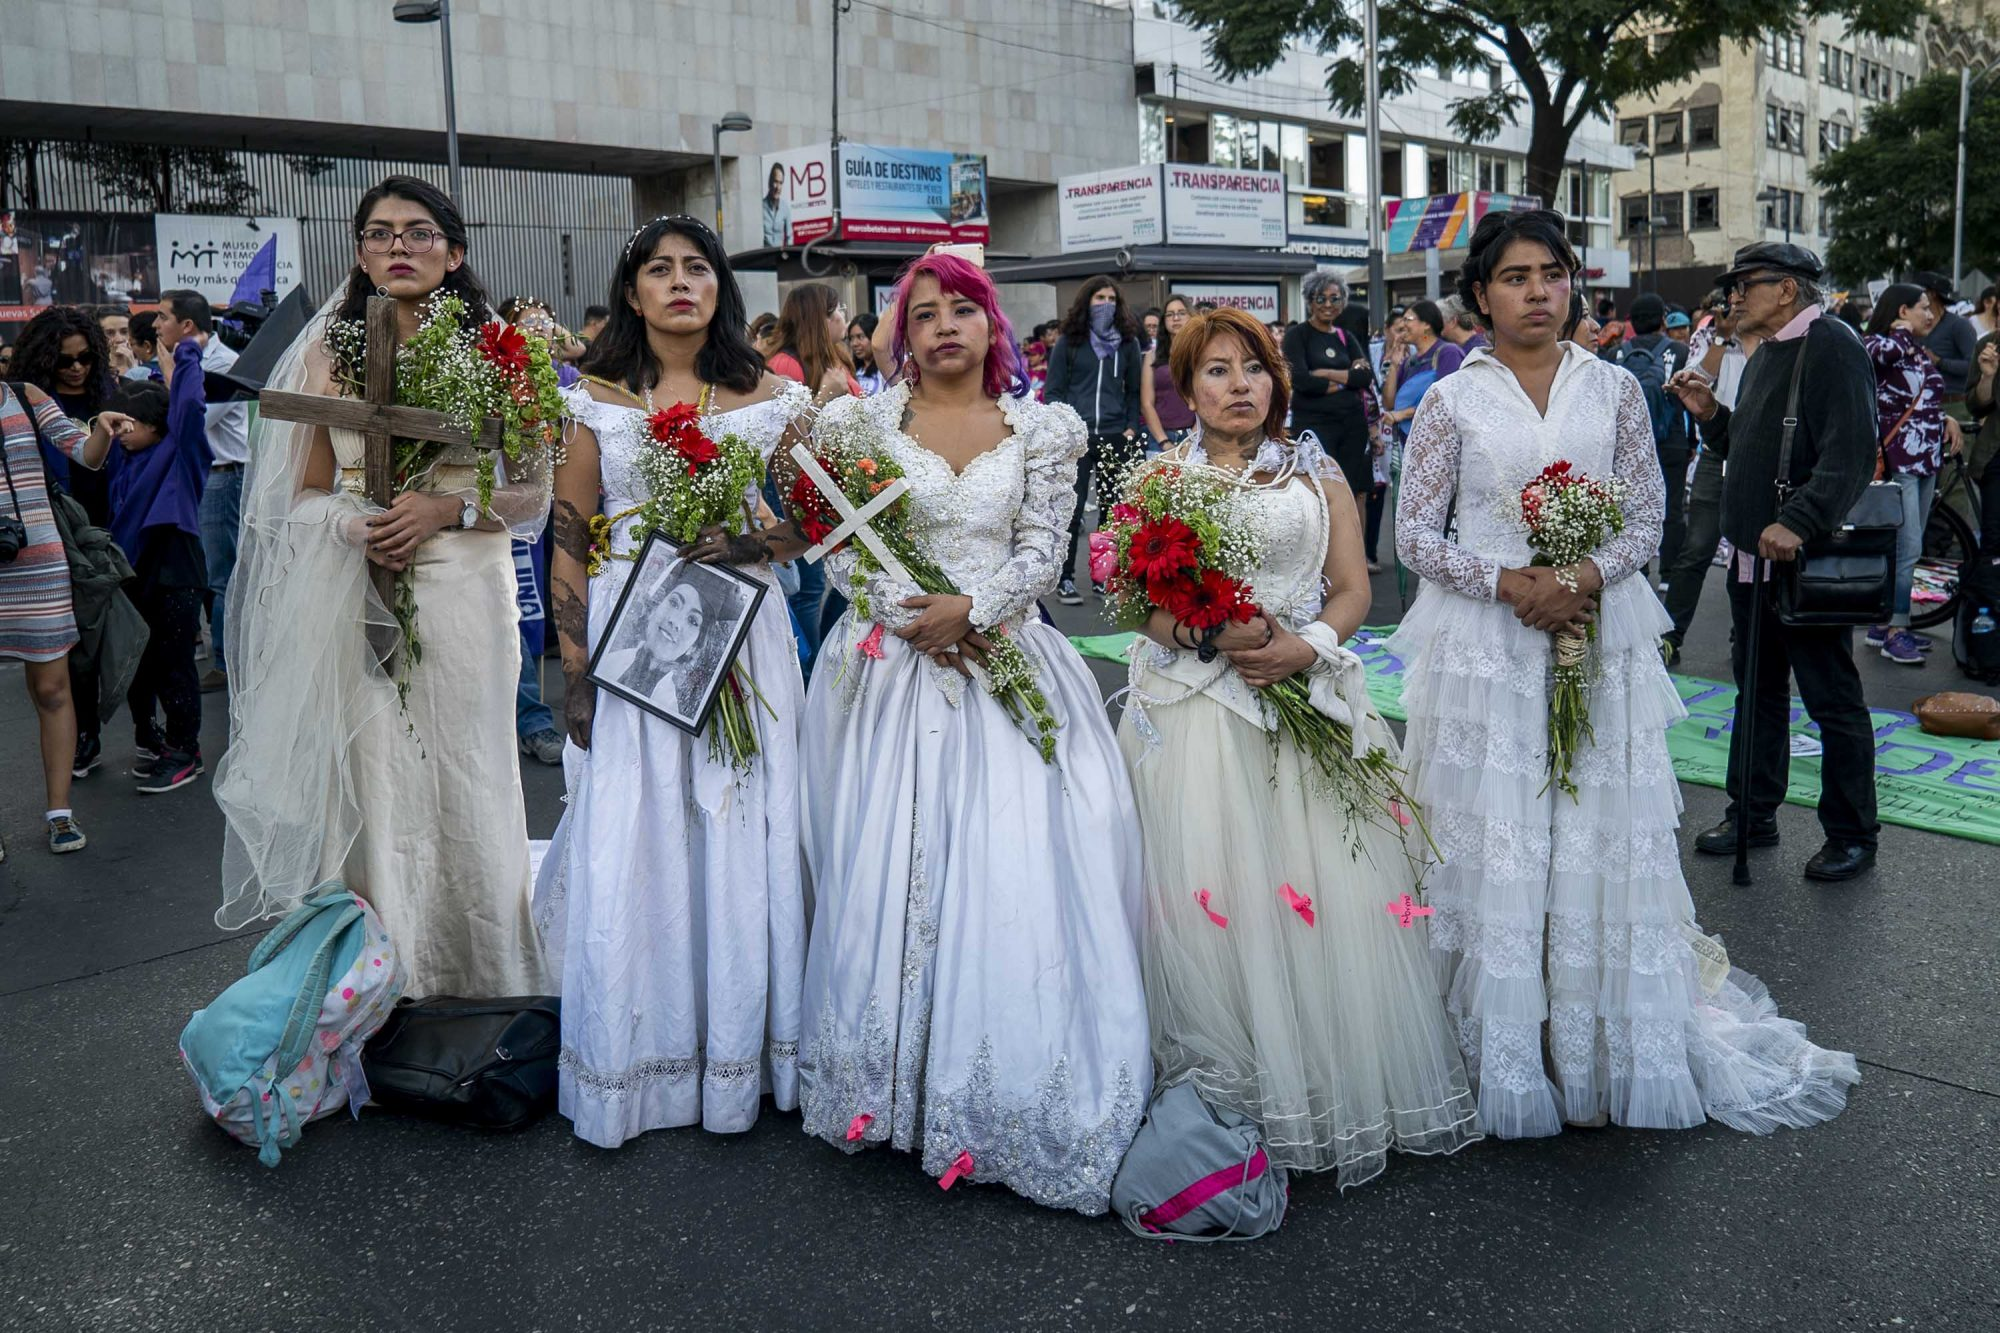 International Day For Elimination Of Violence Against Women In Mexico